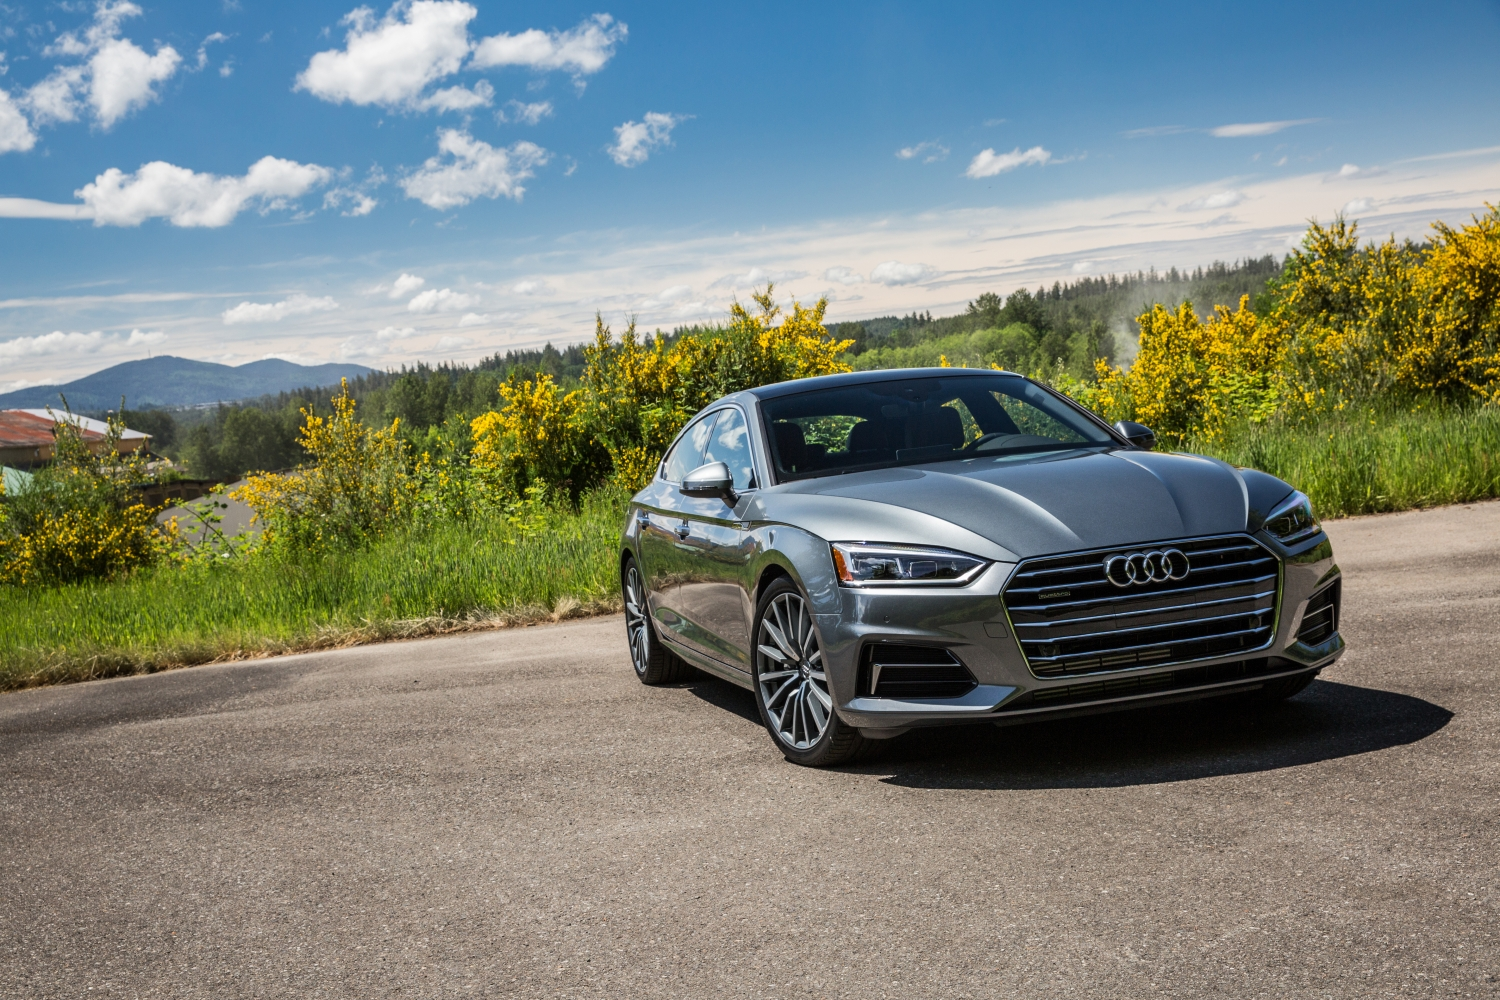 Audi of America marks November sales increase as the new Q5, new-to-the U.S. A5 Sportback and Q7 lead consumer demand